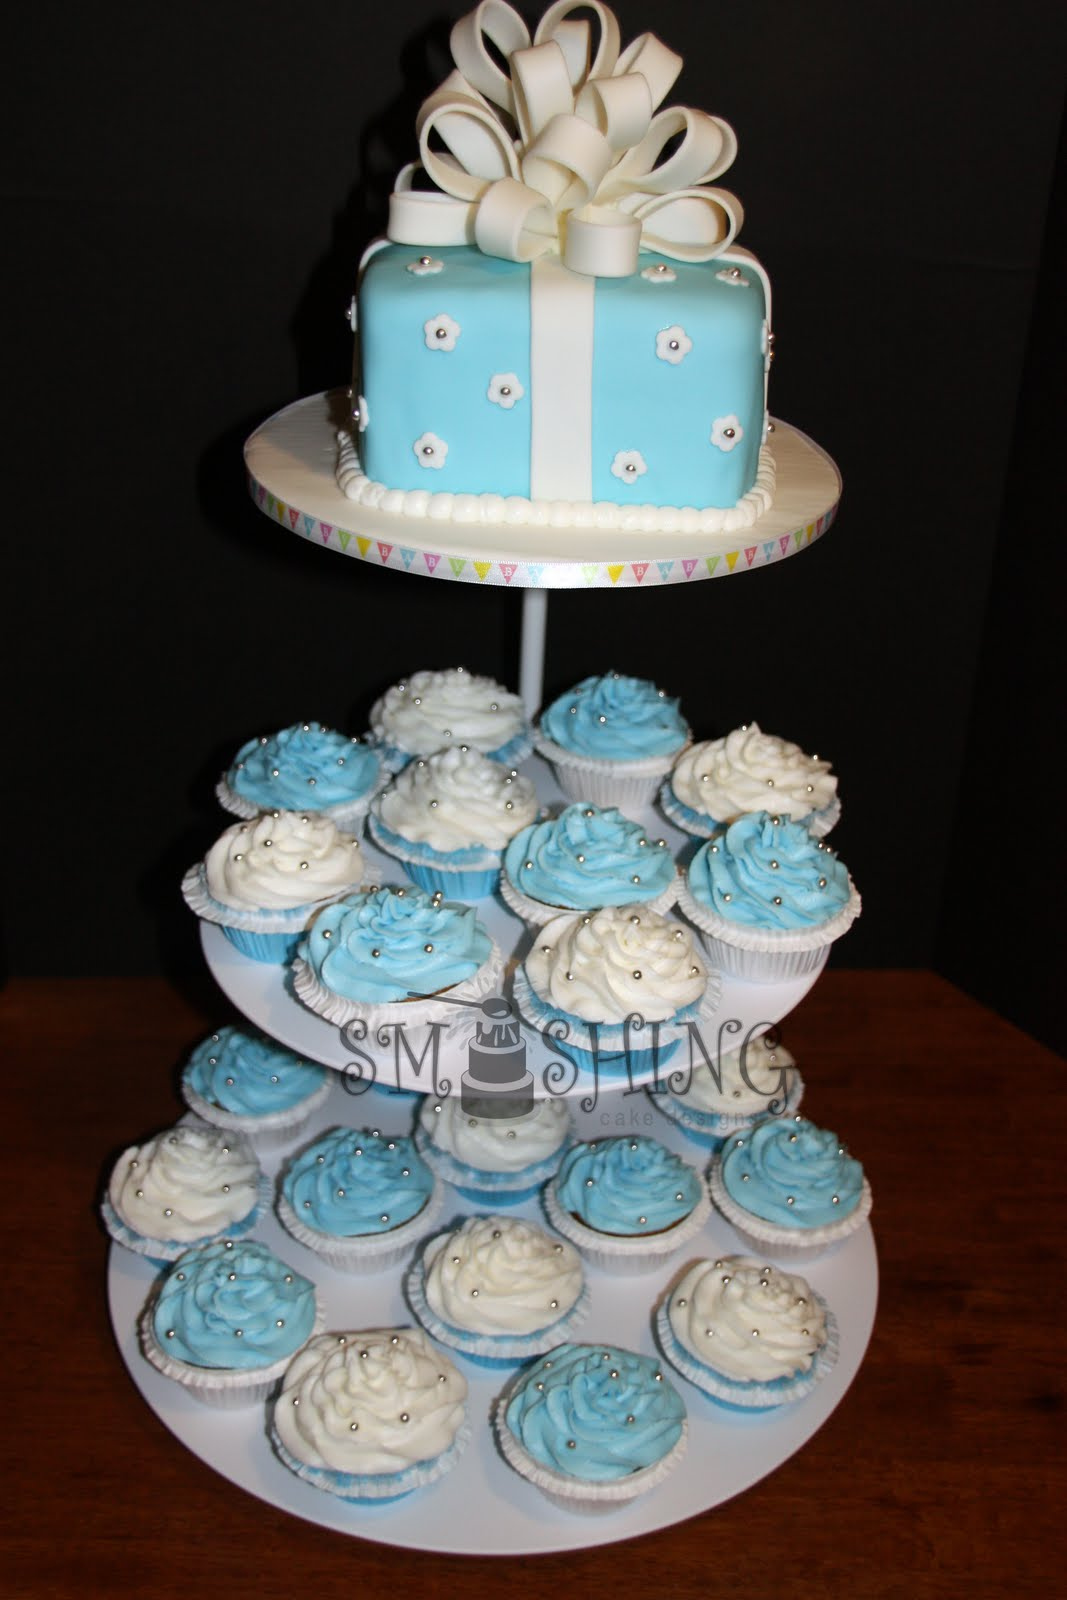 Cake Designs For Baby : Baby Shower Cakes: Baby Shower Cupcake Cakes Designs